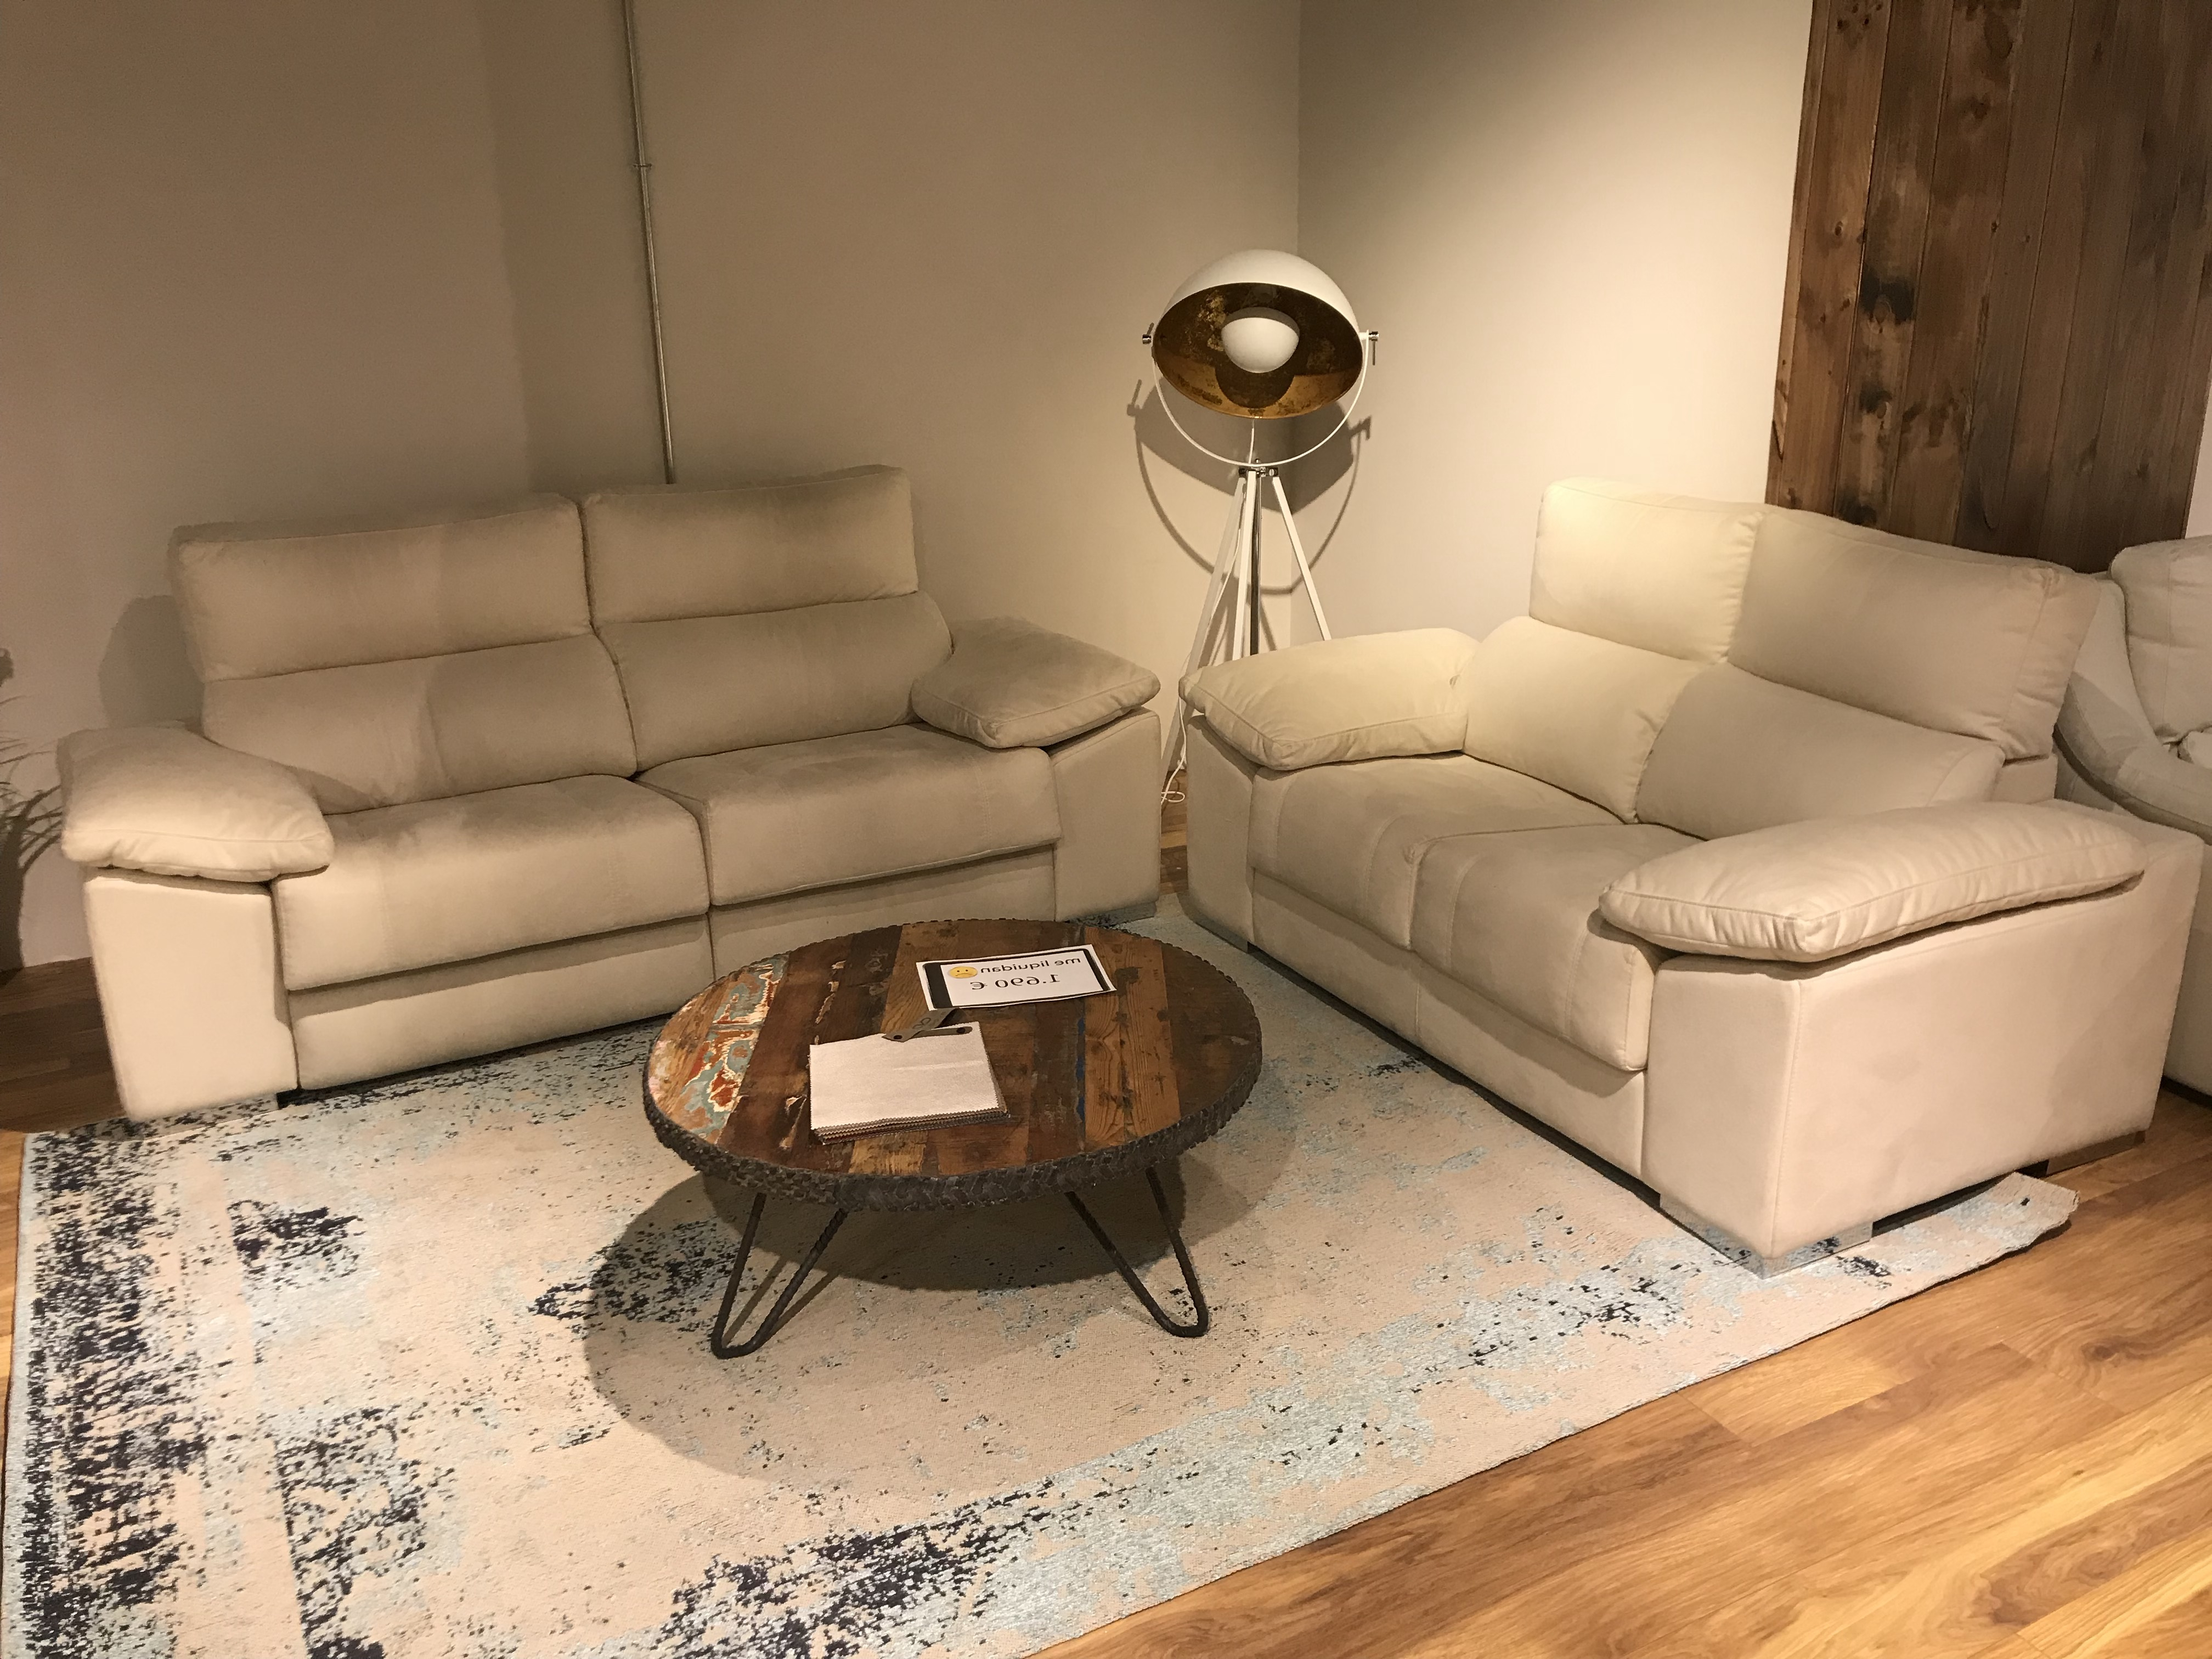 Sofas Outlet Madrid Irdz Outlet the sofa Pany